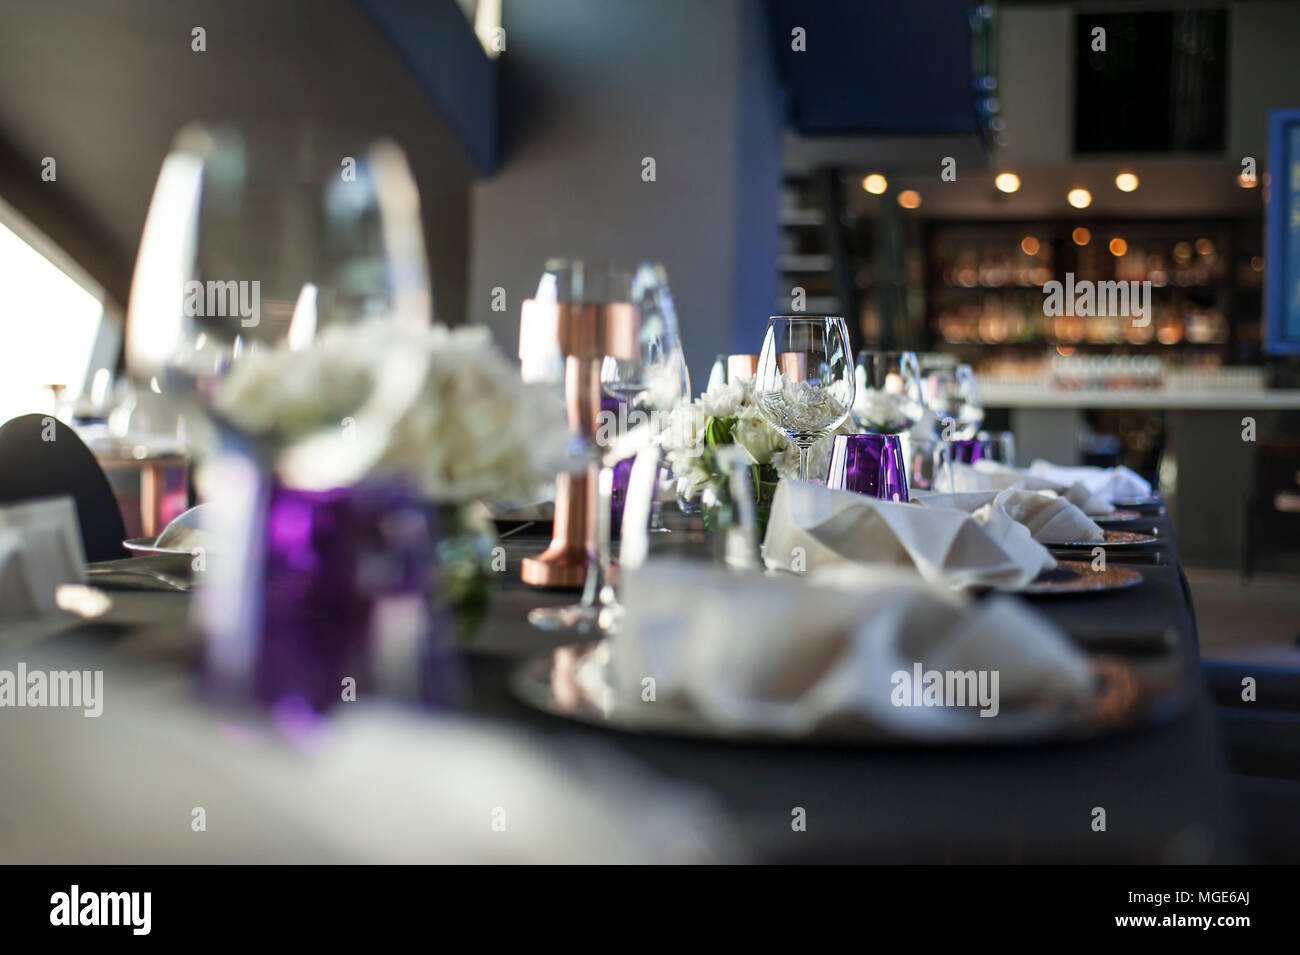 Table Setup At Dinner Party, Purple Color Theme